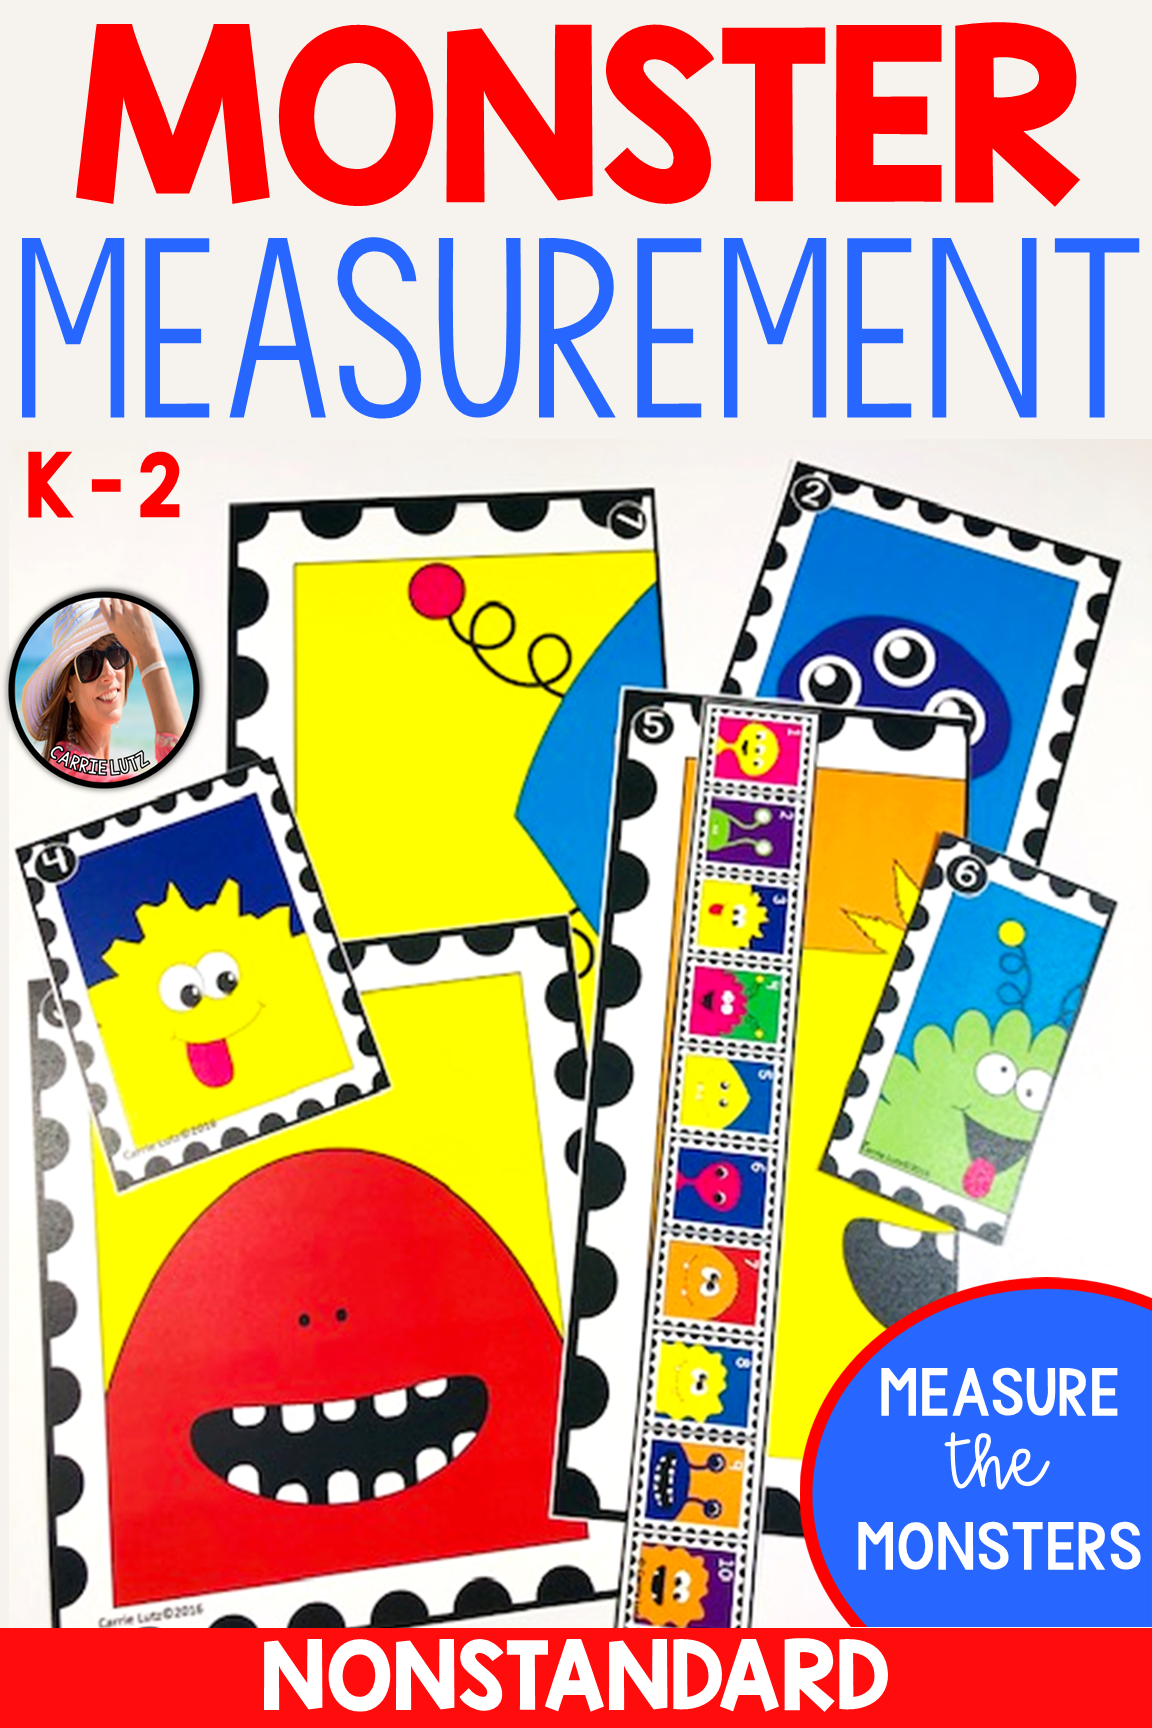 Nonstandard Measurement Monster Measurement